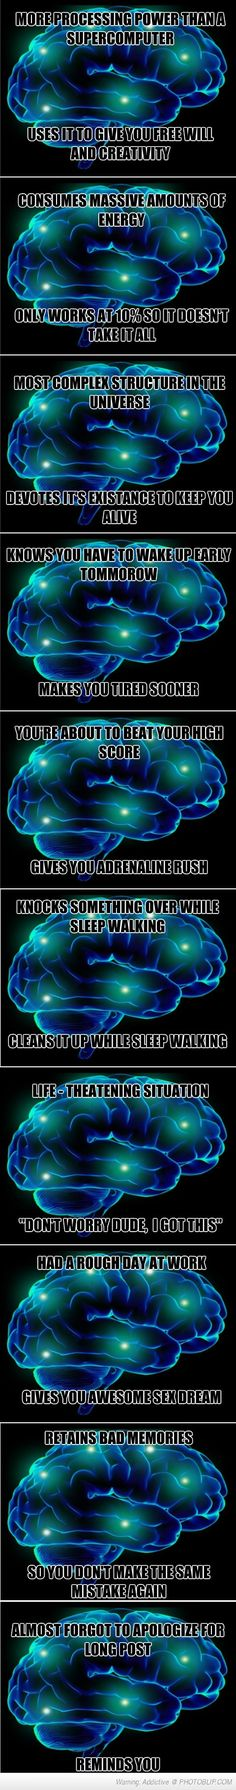 Not All Brains Are Scumbags